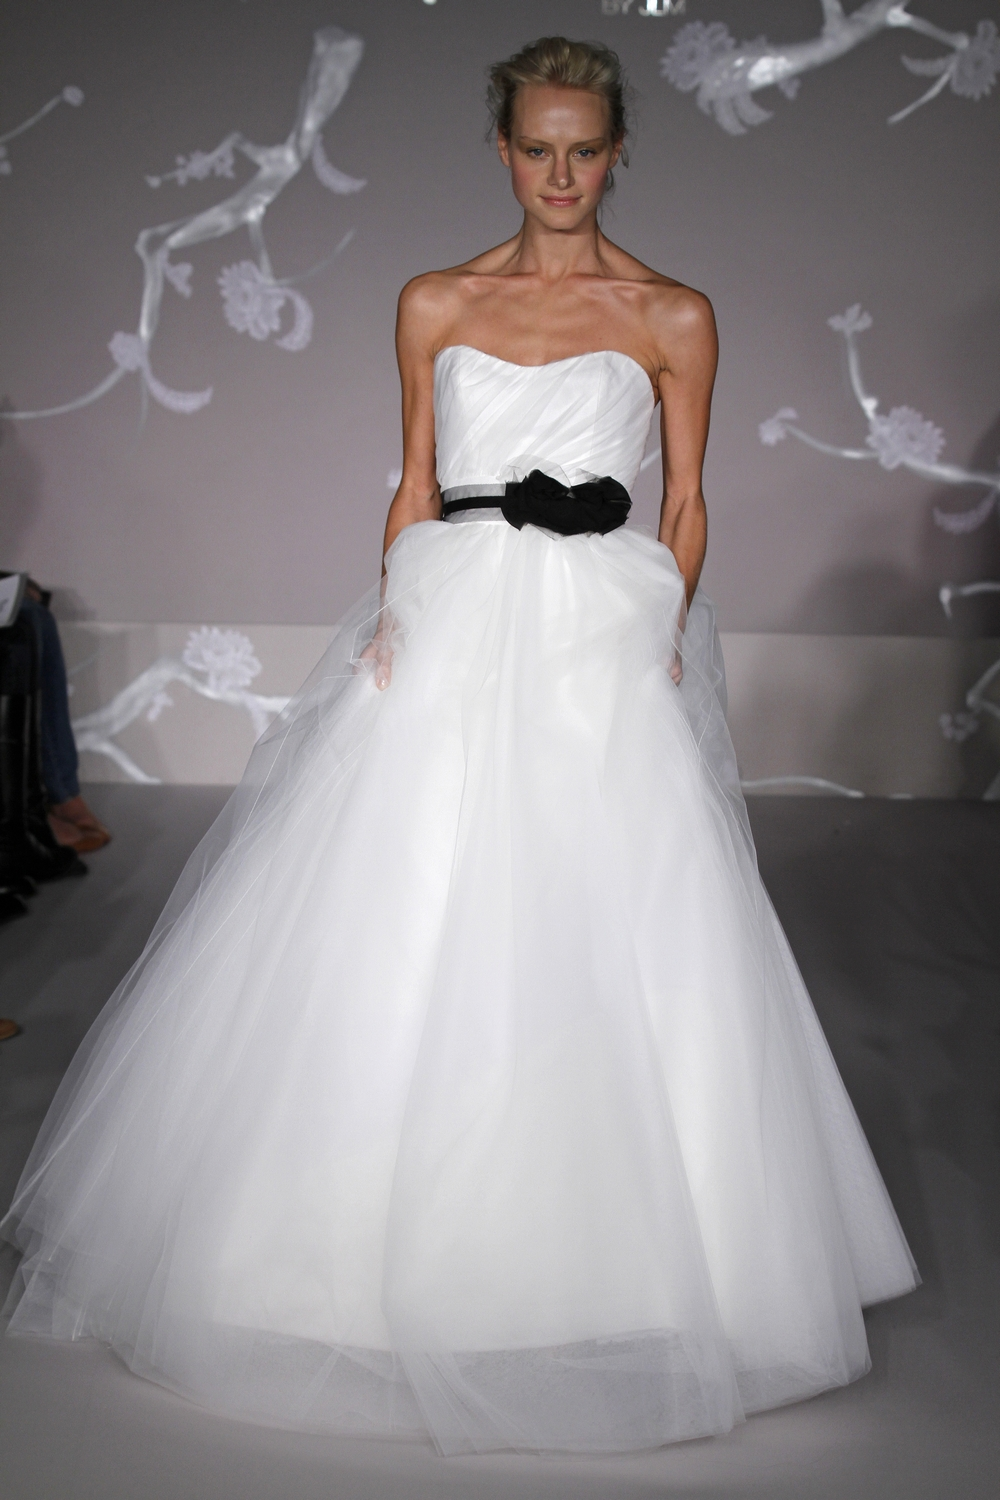 Gorgeous white ball gown wedding dress with tulle skirt for Wedding dresses with sashes